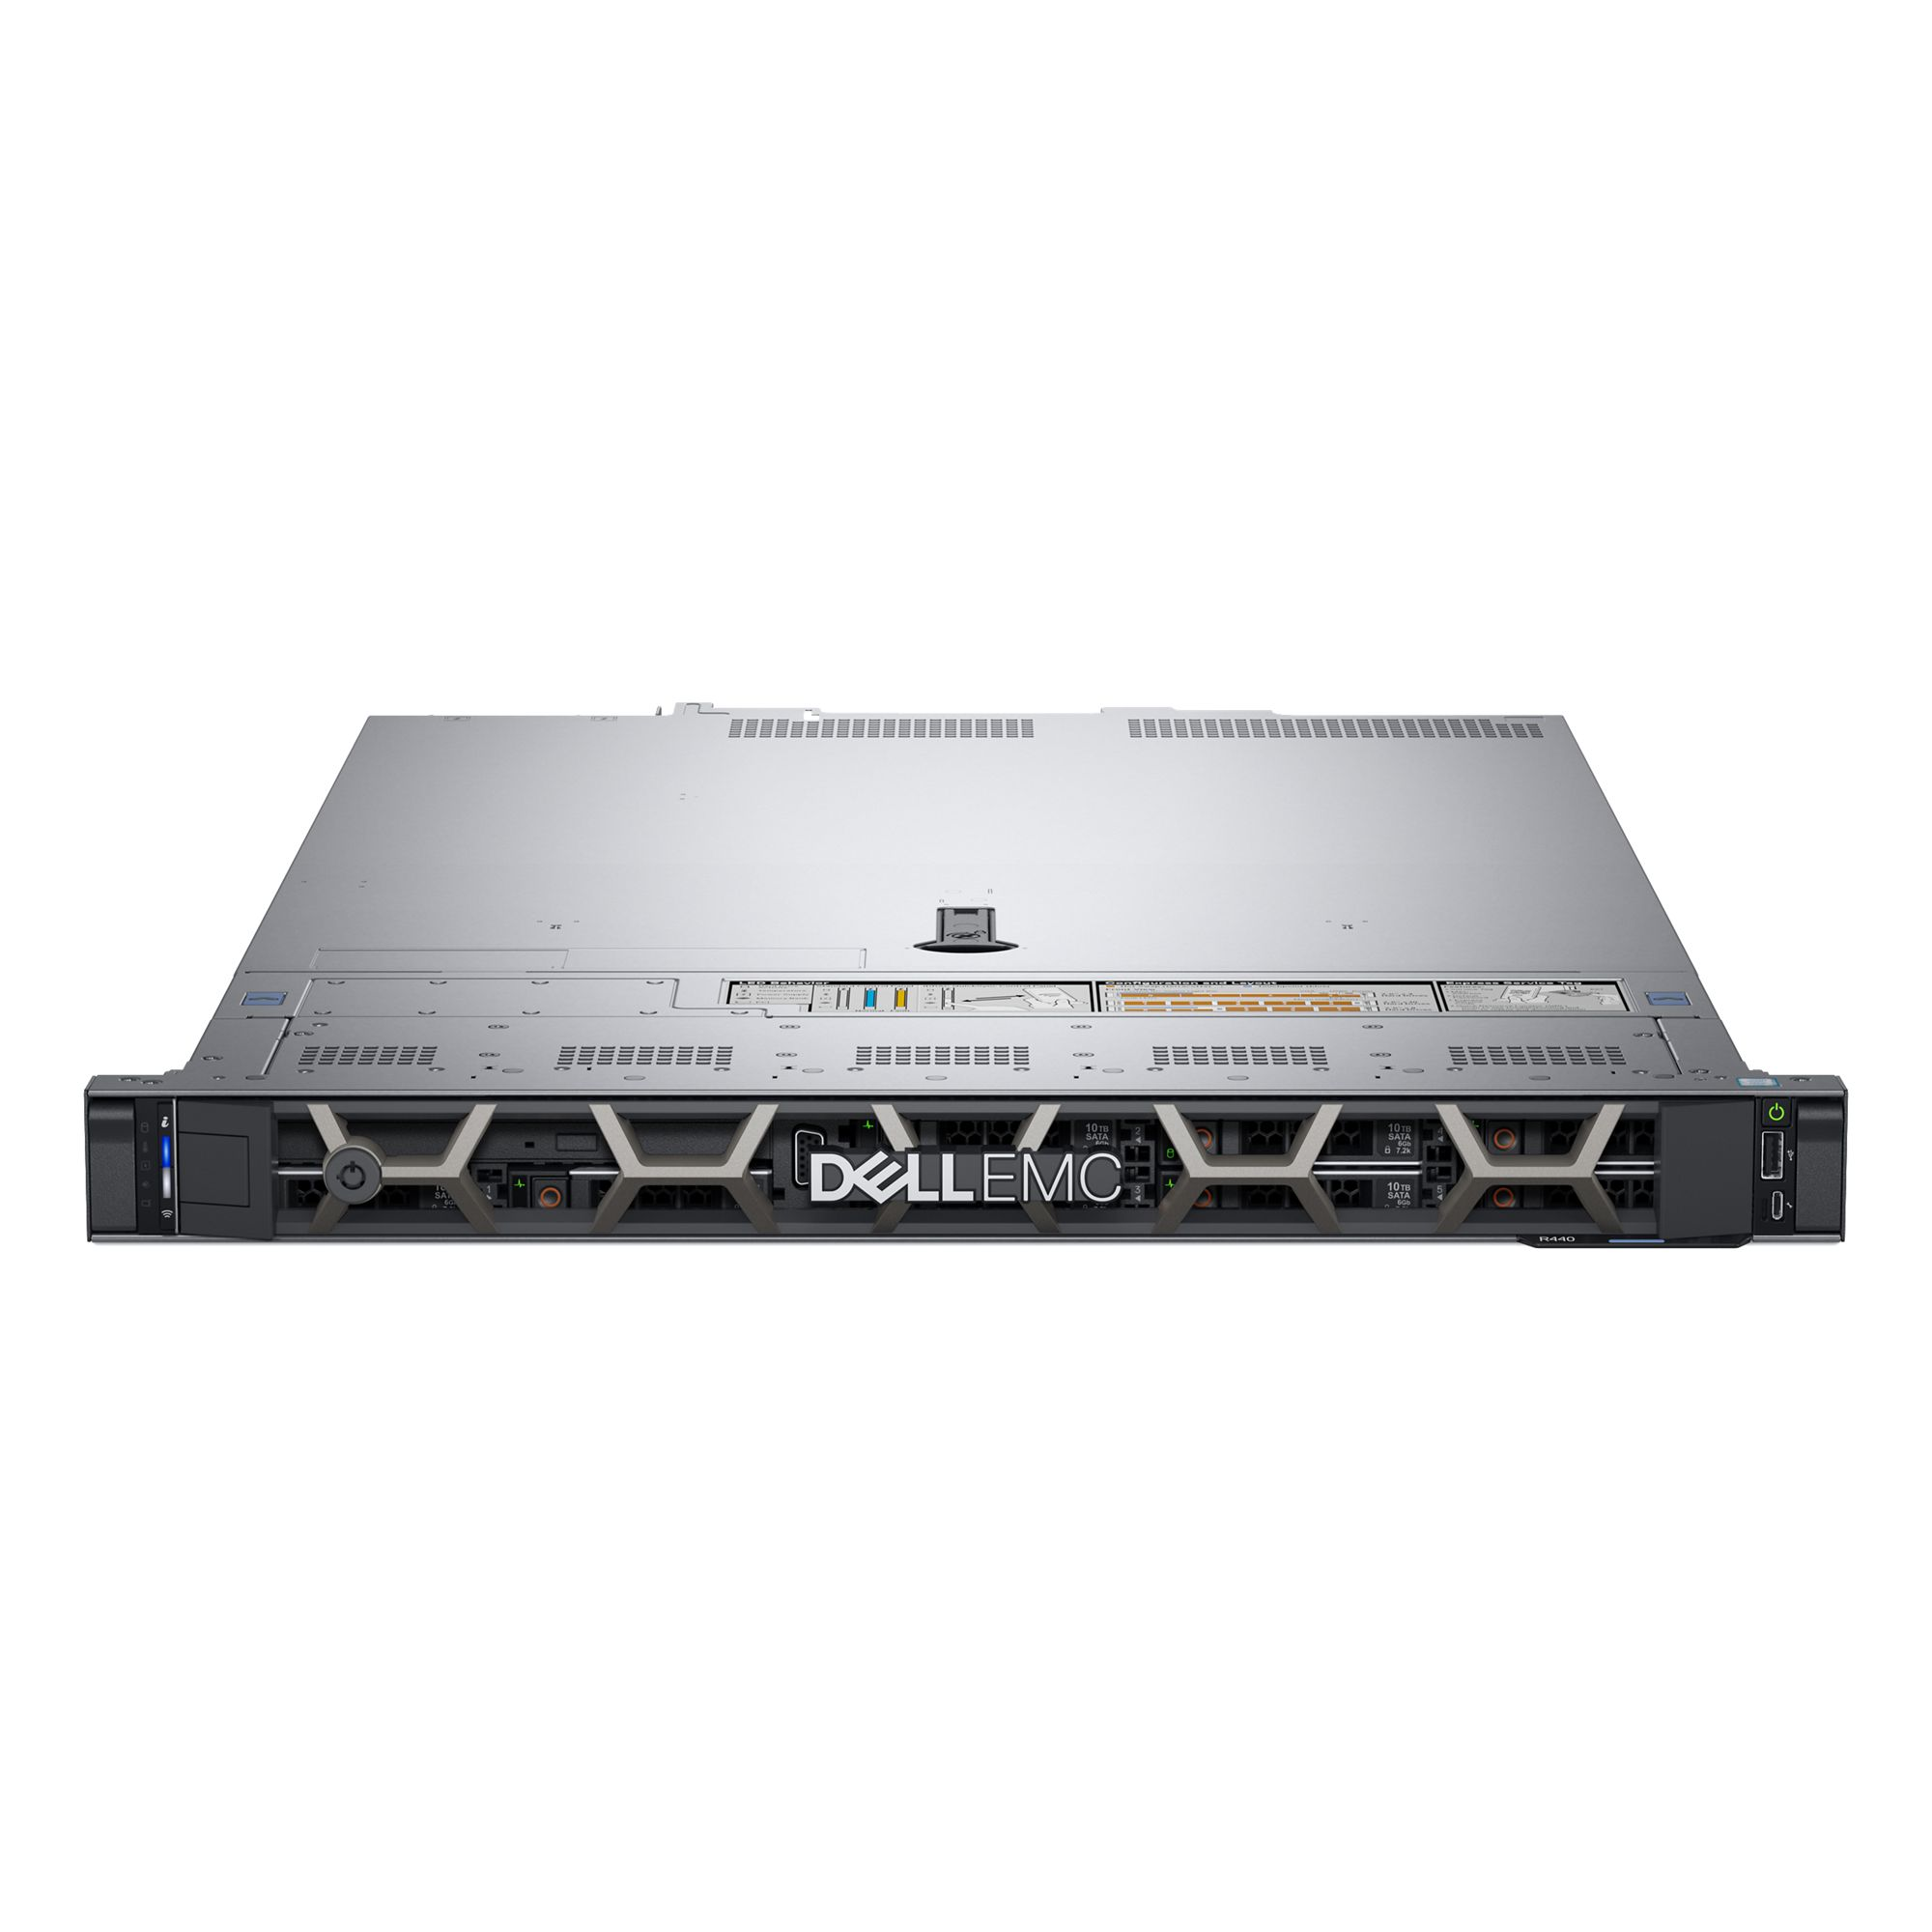 Serwer DELL PowerEdge R440 Silver 4208 16GB 240GB SSD H330 550W 3yNBD